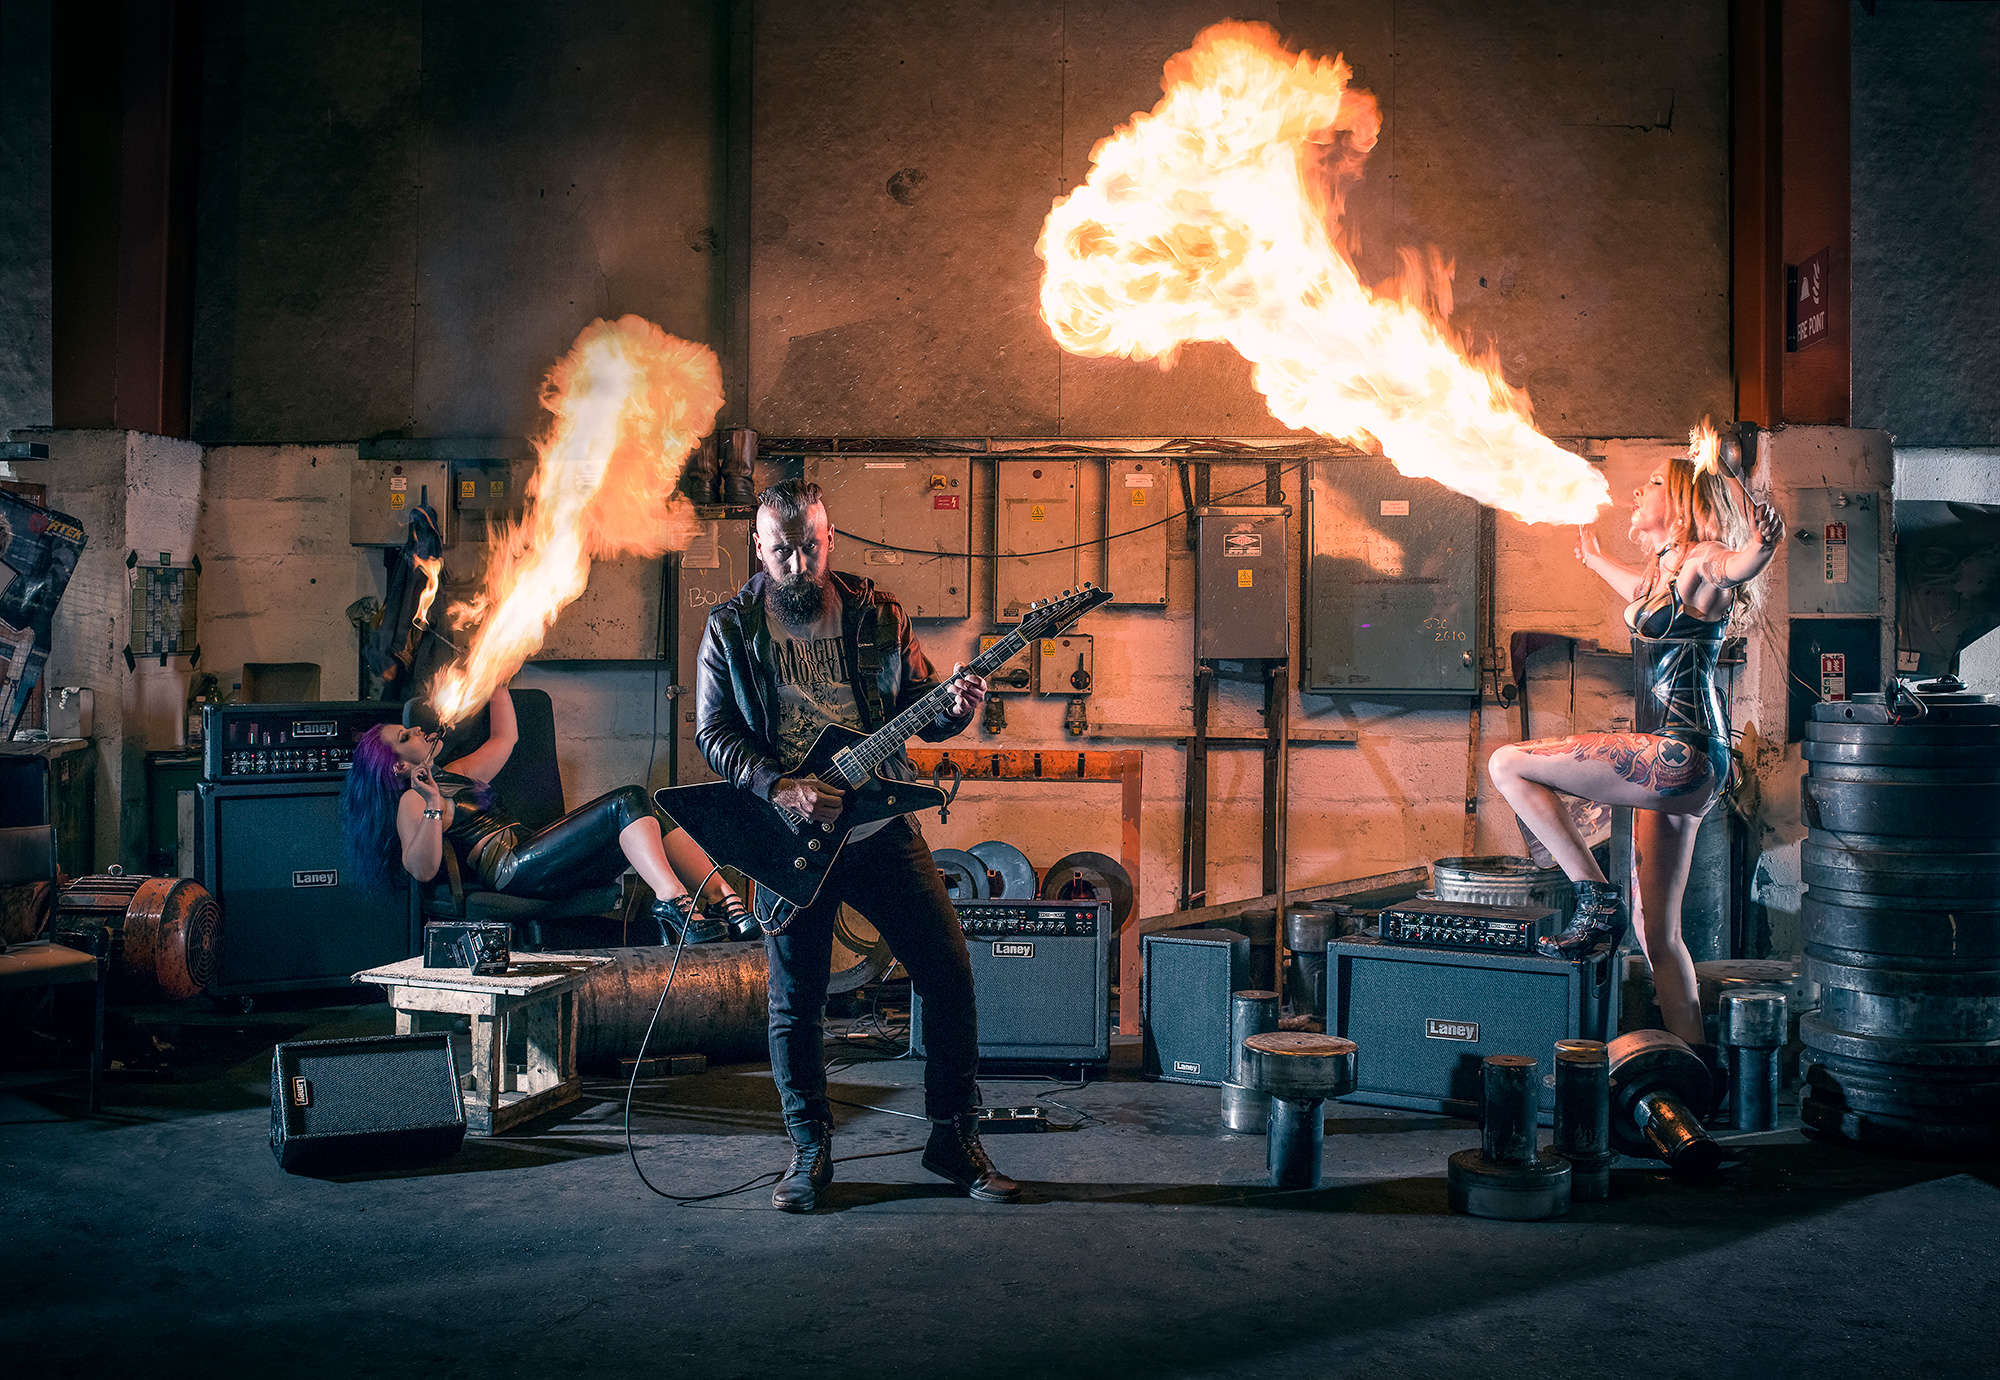 Industrial location photography for laney music of Fire eater and performers